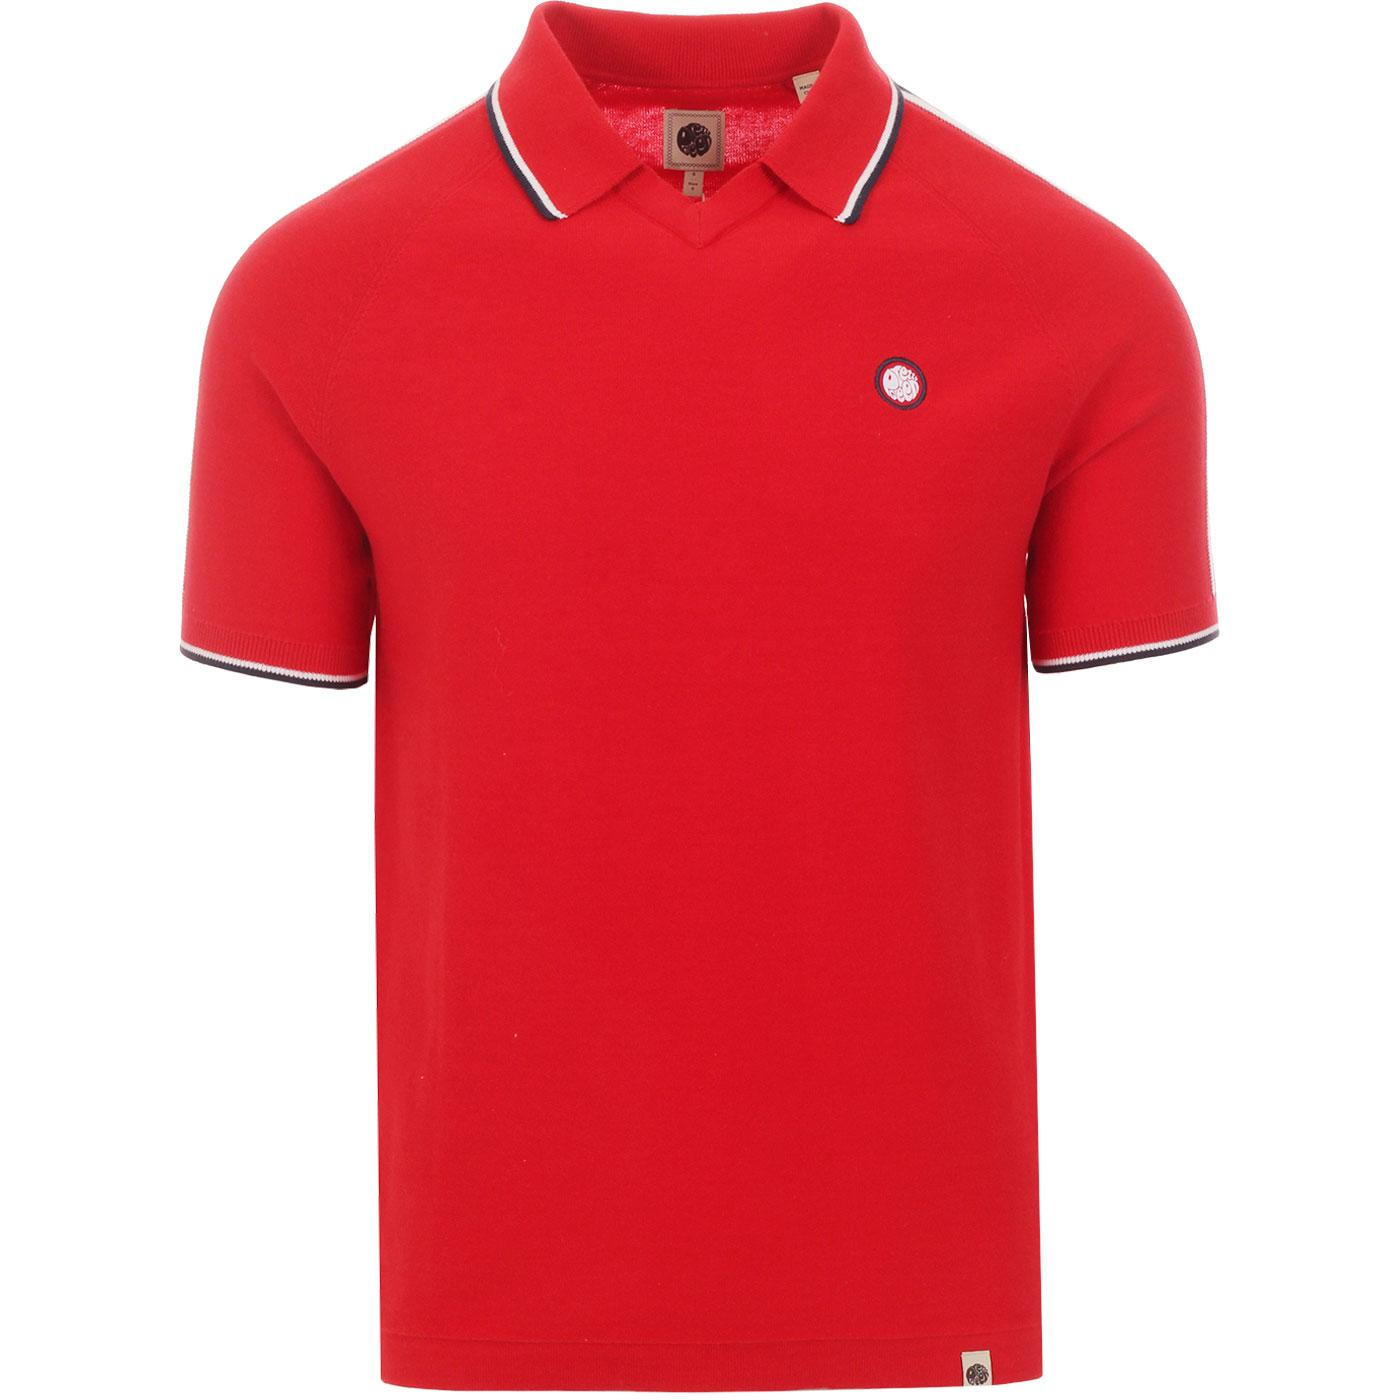 PRETTY GREEN Knitted Shoulder Stripe Football Top